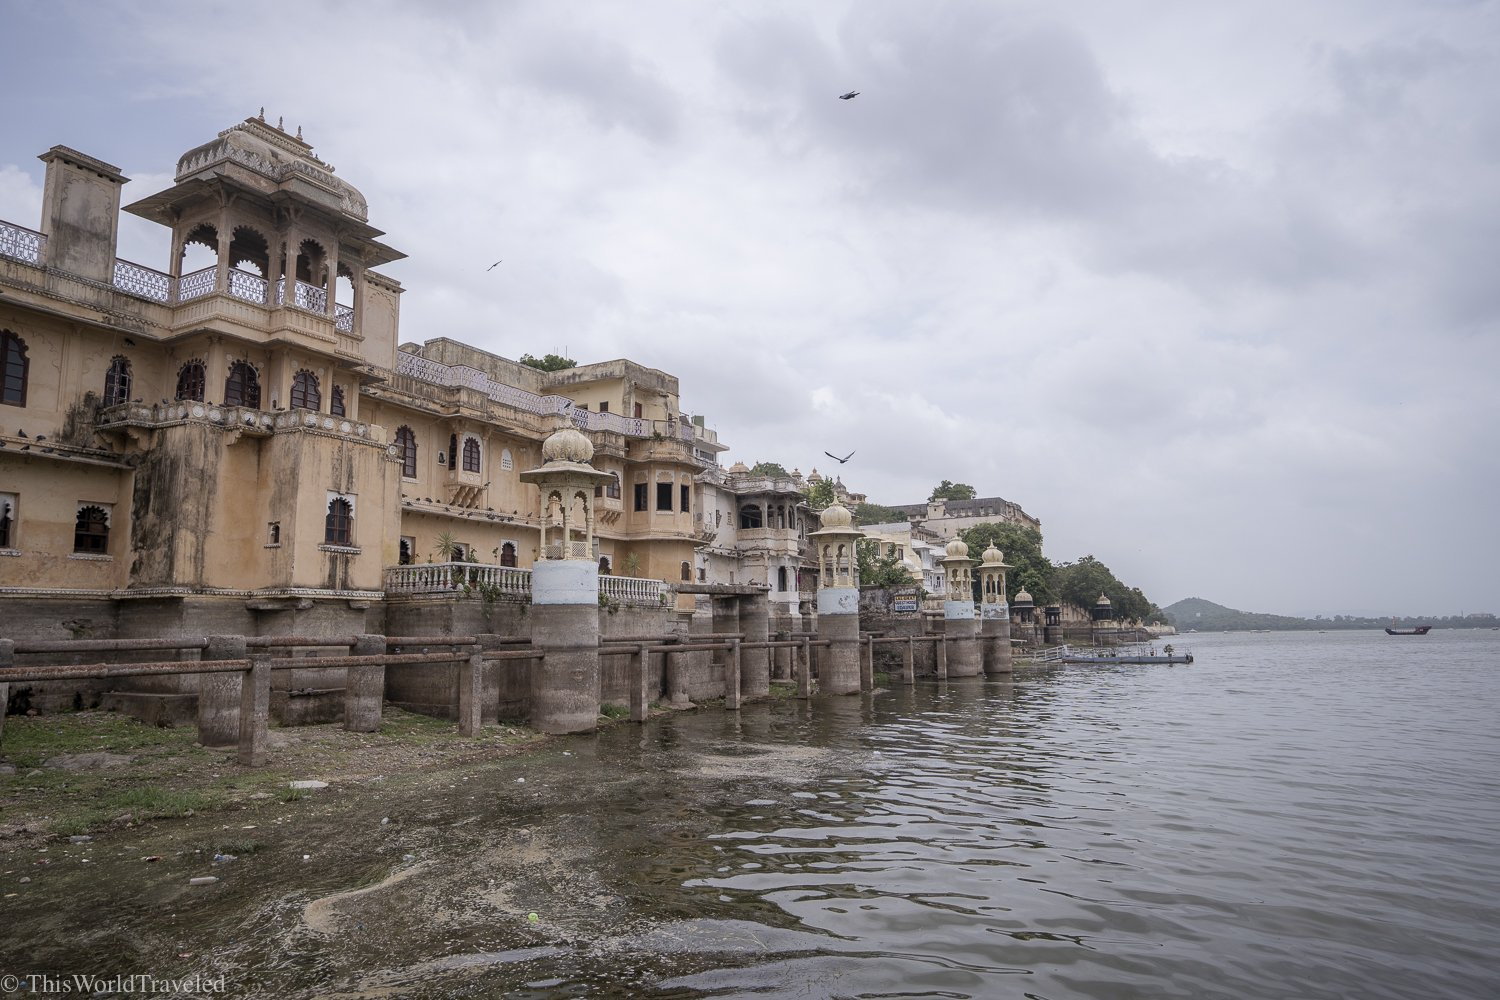 View of the buildings on Lake Pichola from a boat ride